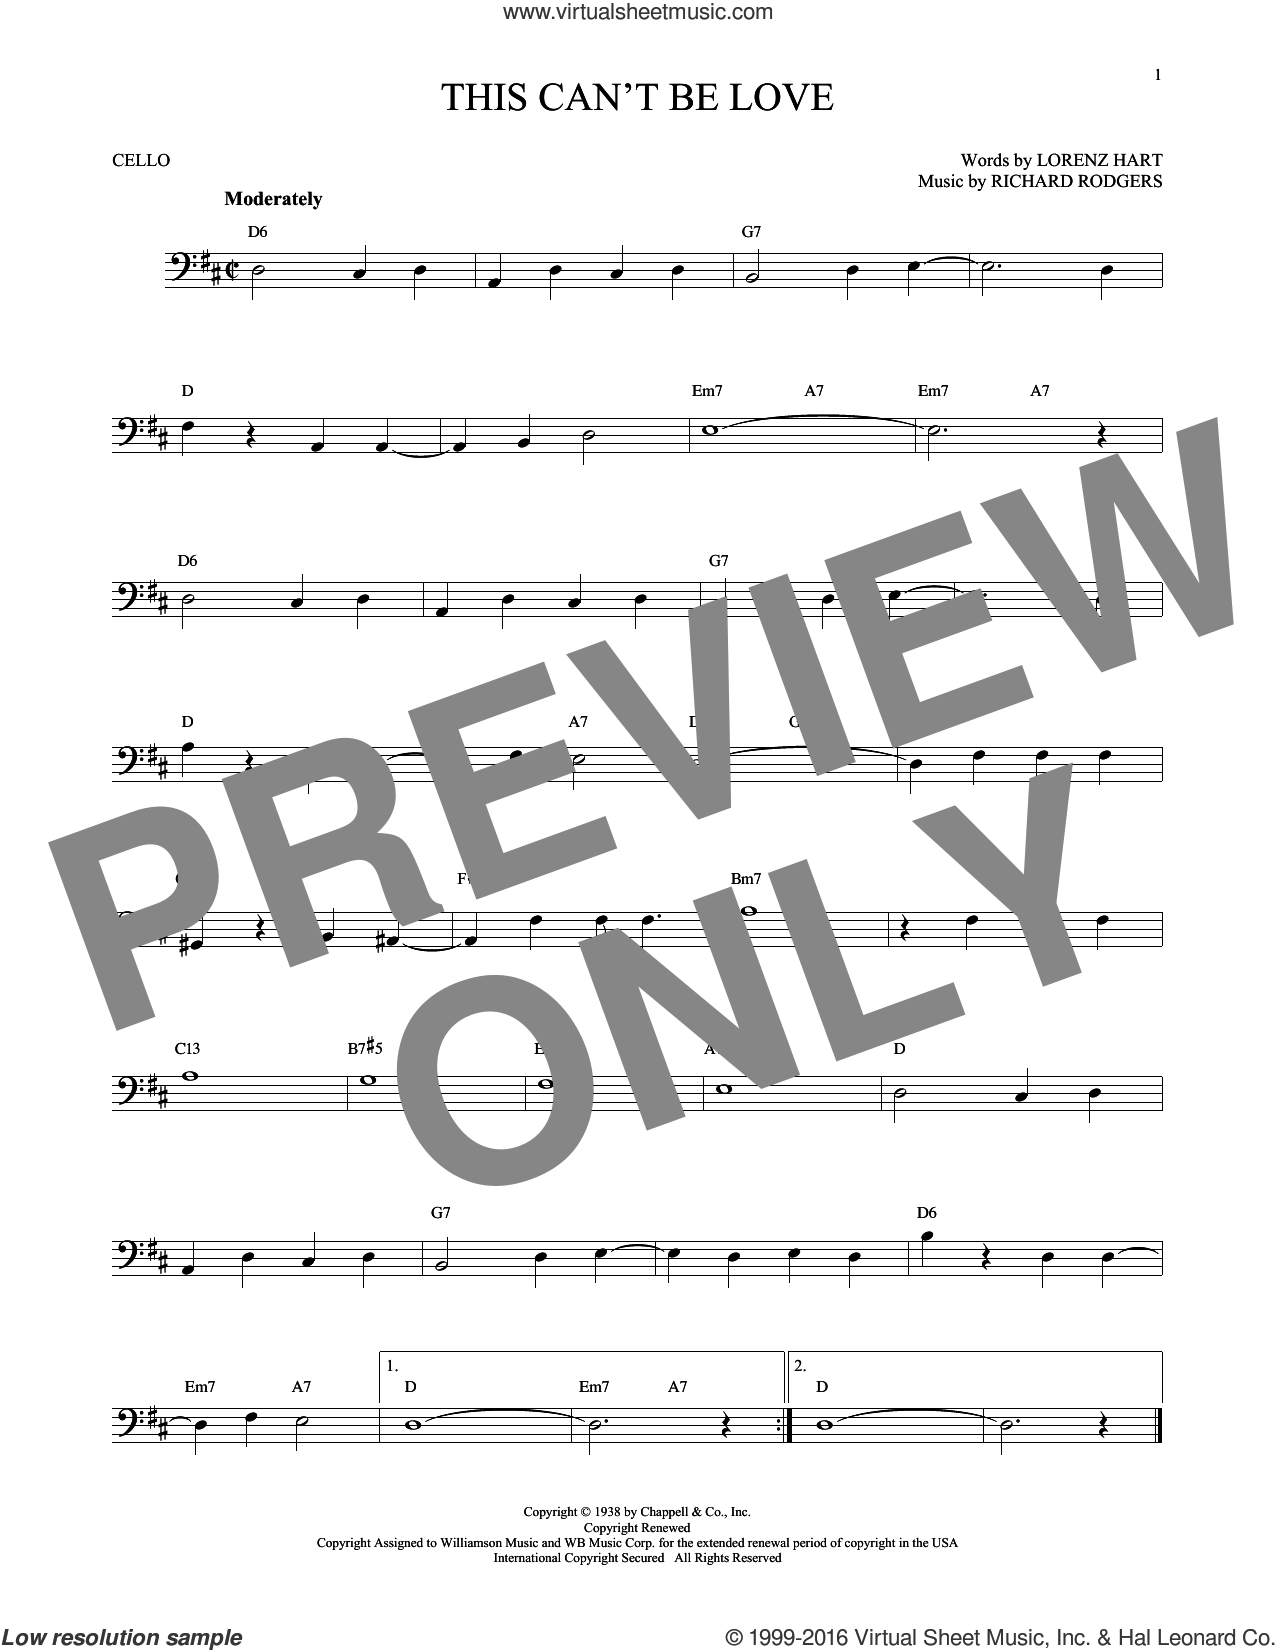 This Can't Be Love sheet music for cello solo by Rodgers & Hart, Lorenz Hart and Richard Rodgers, intermediate